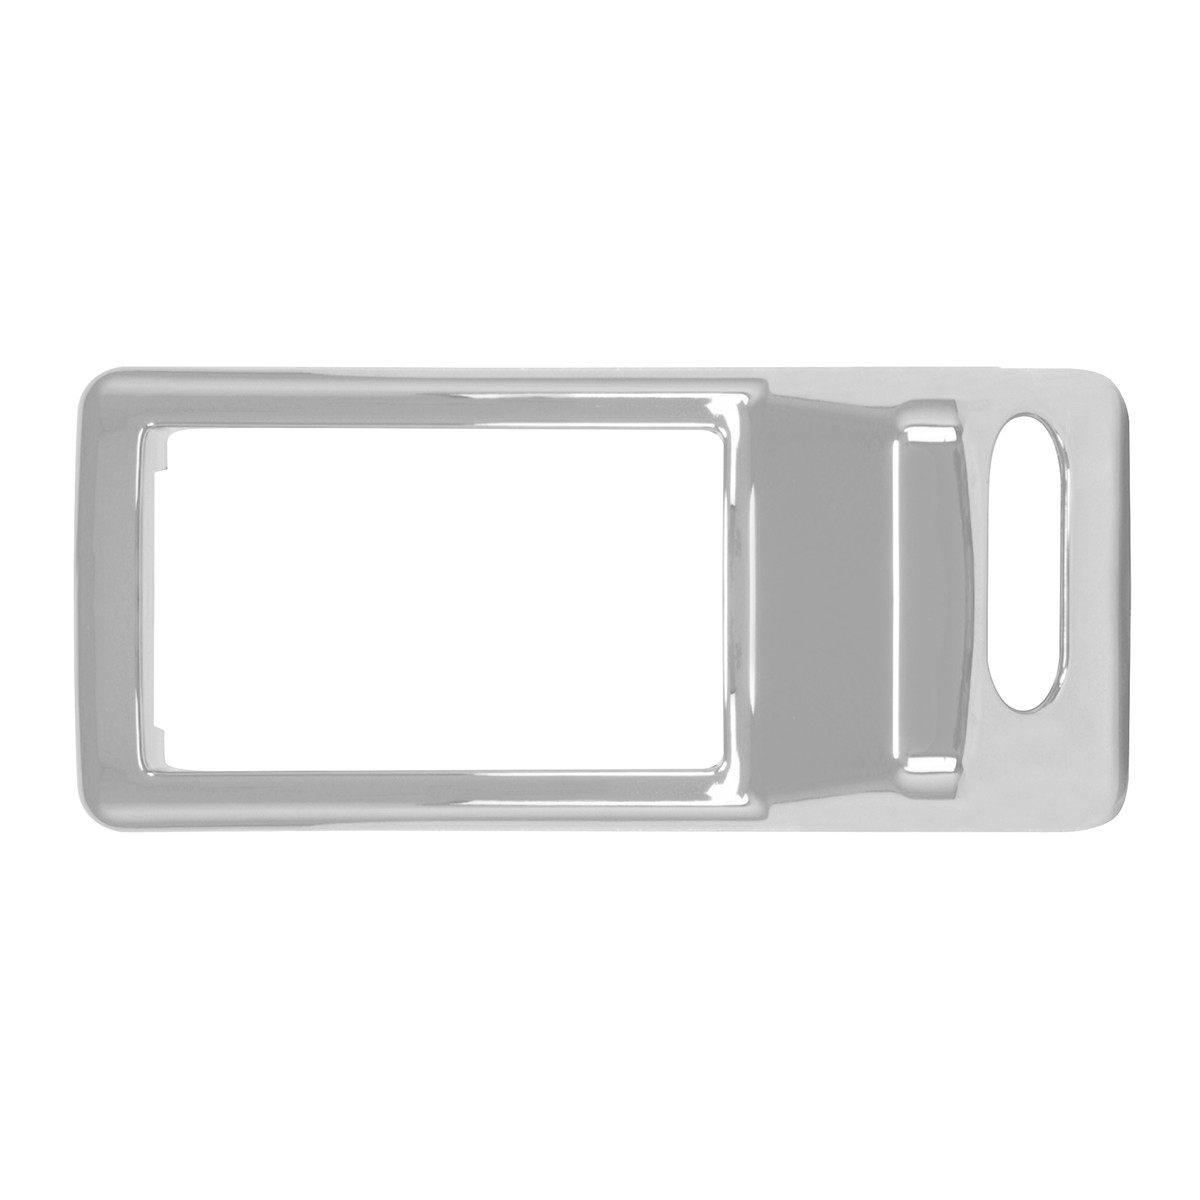 68378 A/C Vent Cover for Kenworth W